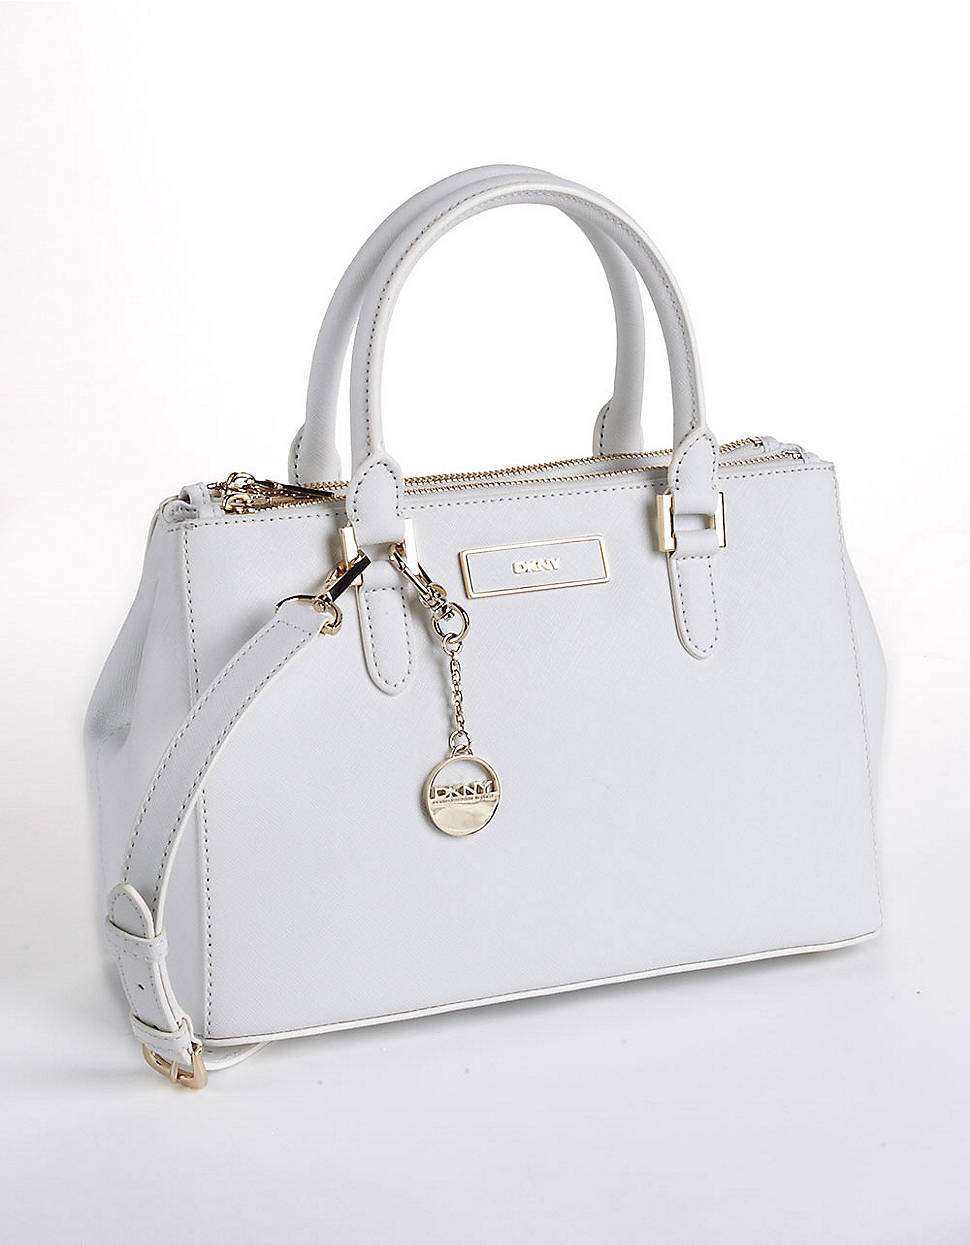 Dkny Leather Satchel Bag in White | Lyst